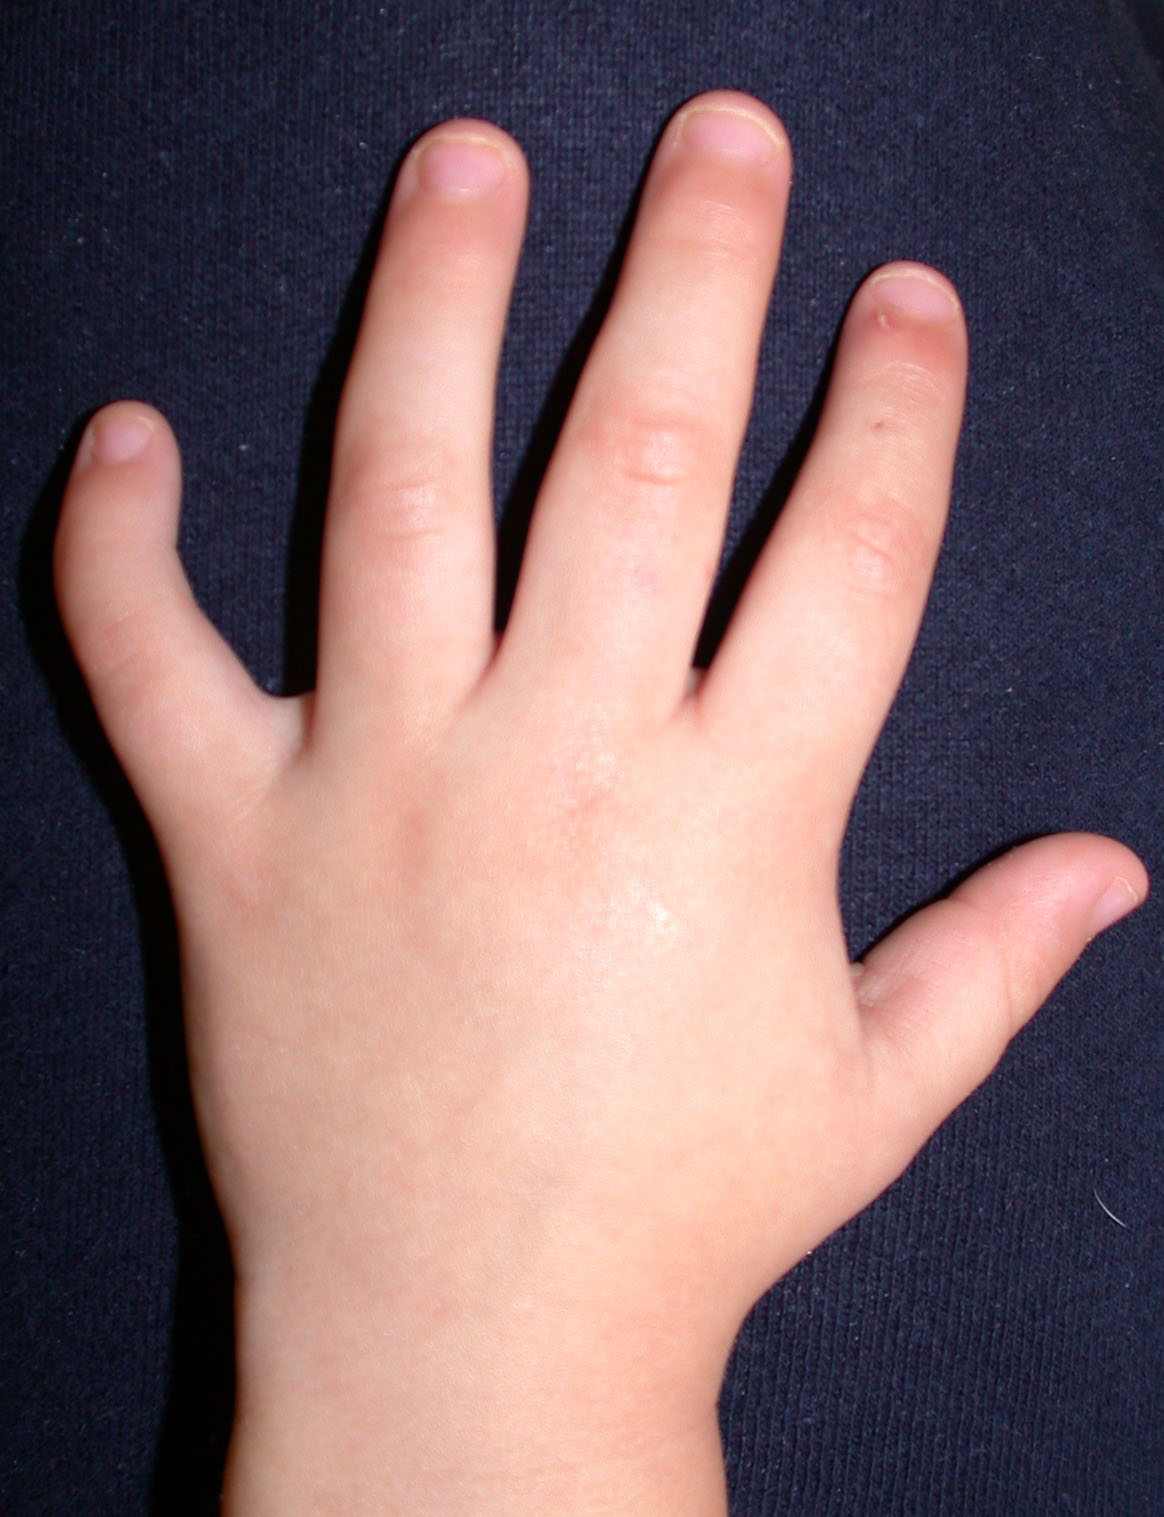 Clinodactyly | Congenital Hand and Arm Differences